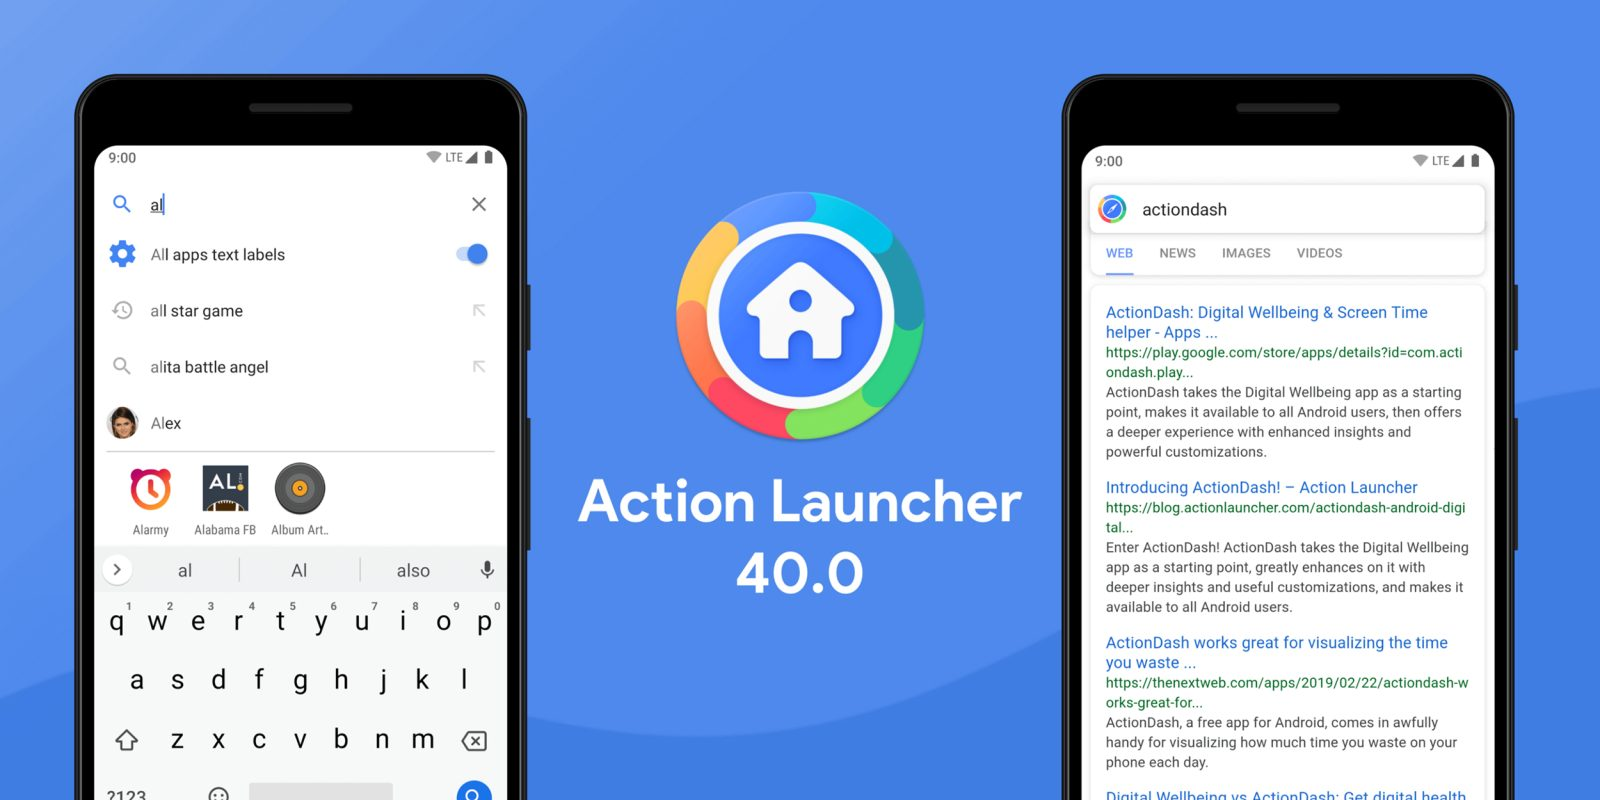 Action Launcher v40 overhaul includes new ad-supported Action Search, brand new app icon, more